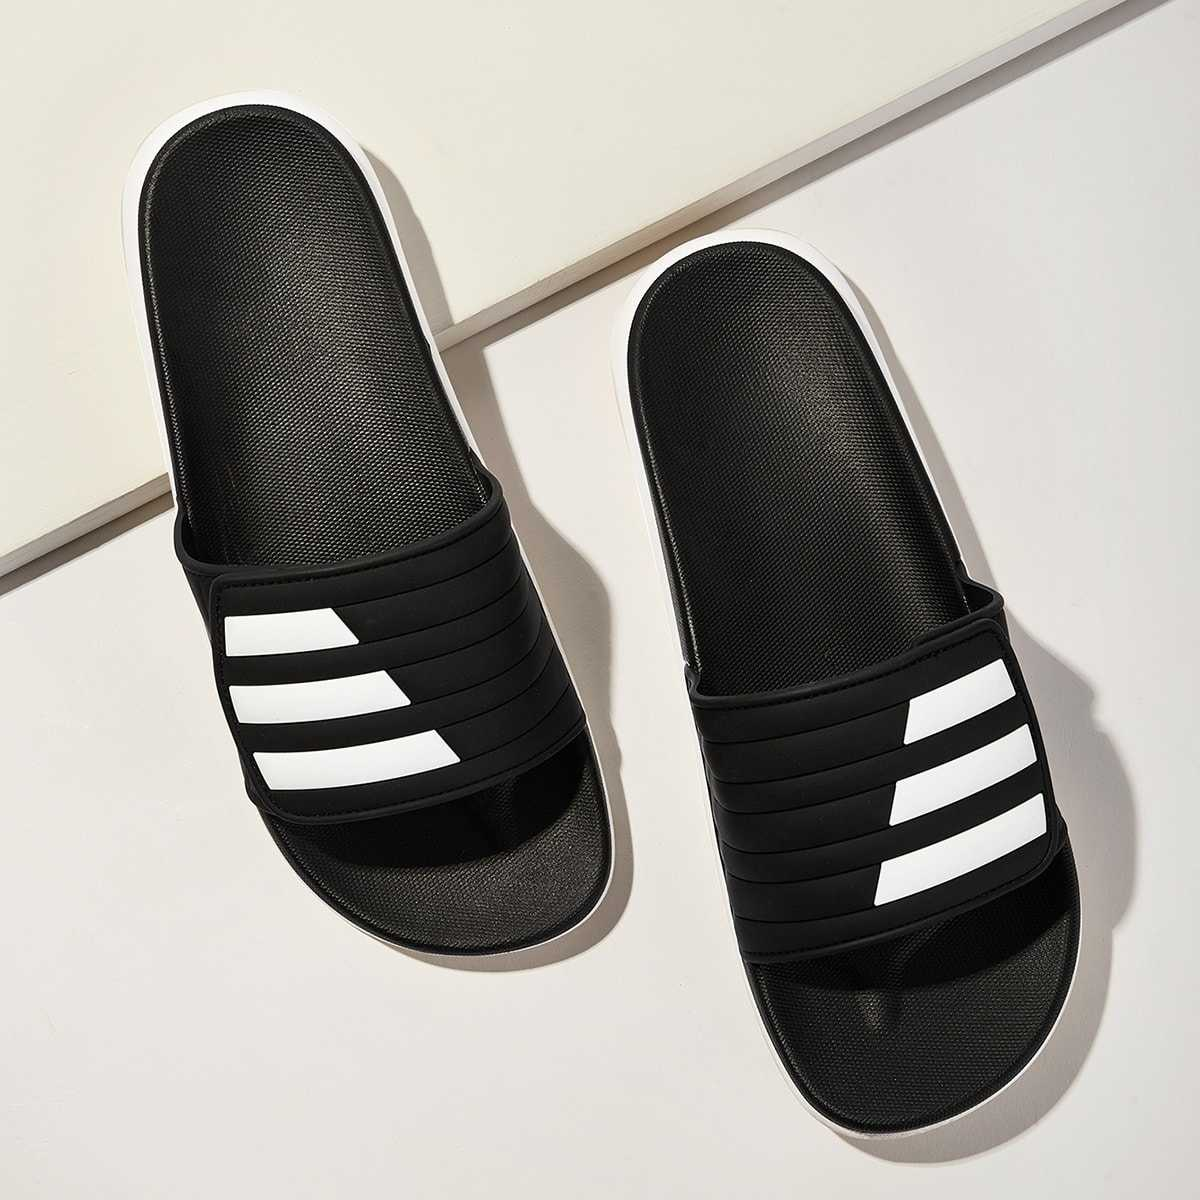 Guys Two Tone Flat Slippers in Black and White by ROMWE on GOOFASH